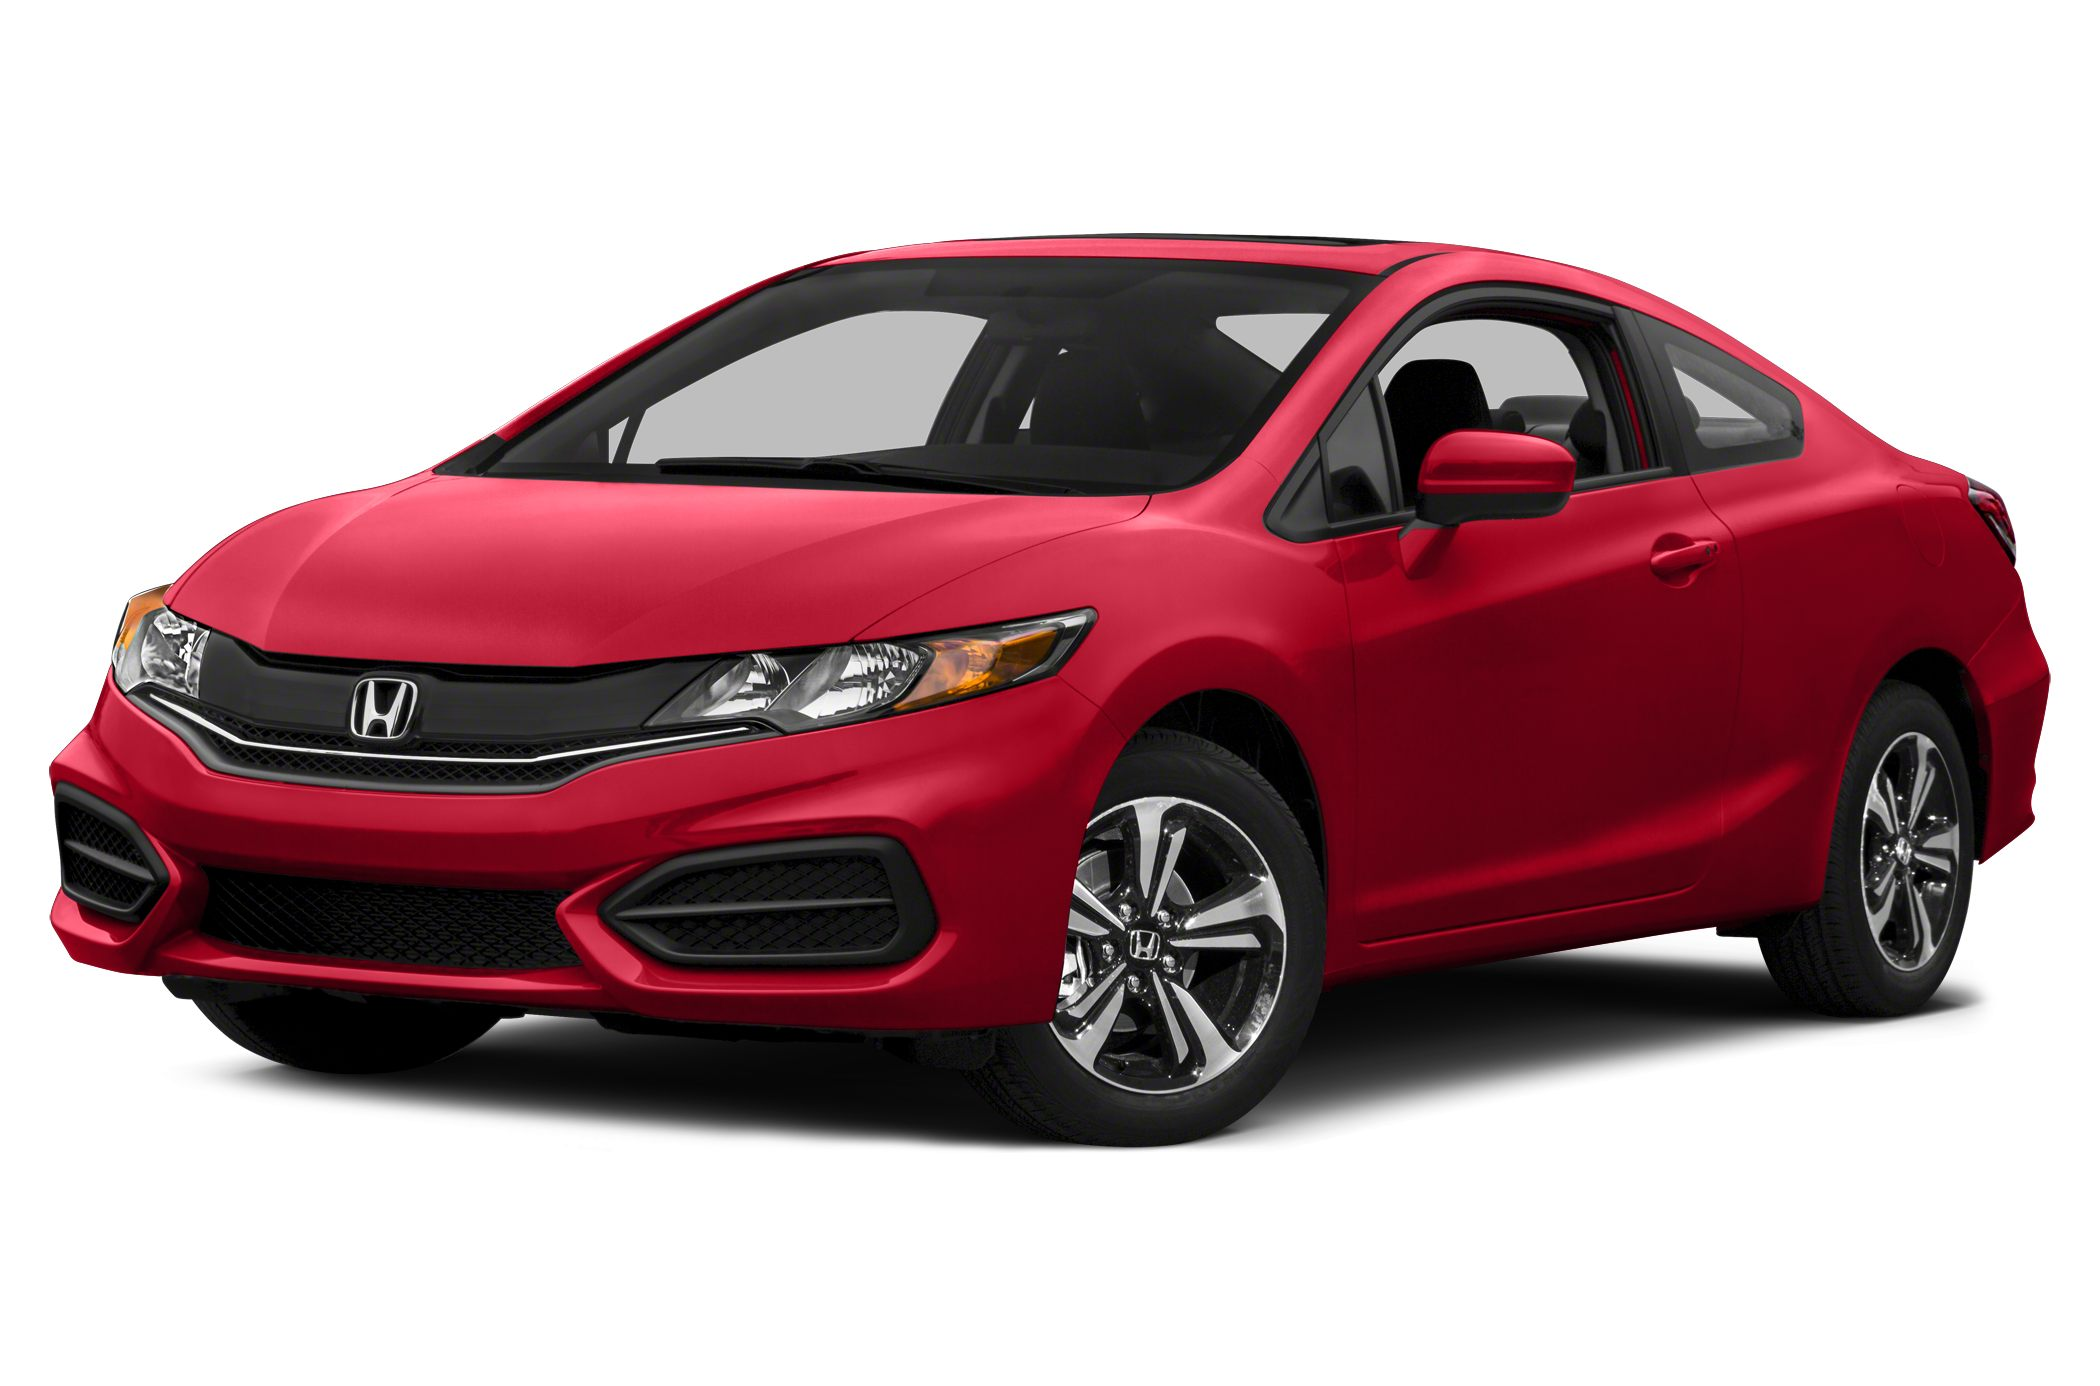 2015 Honda Civic EX Sedan for sale in Chicago for $22,010 with 6 miles.